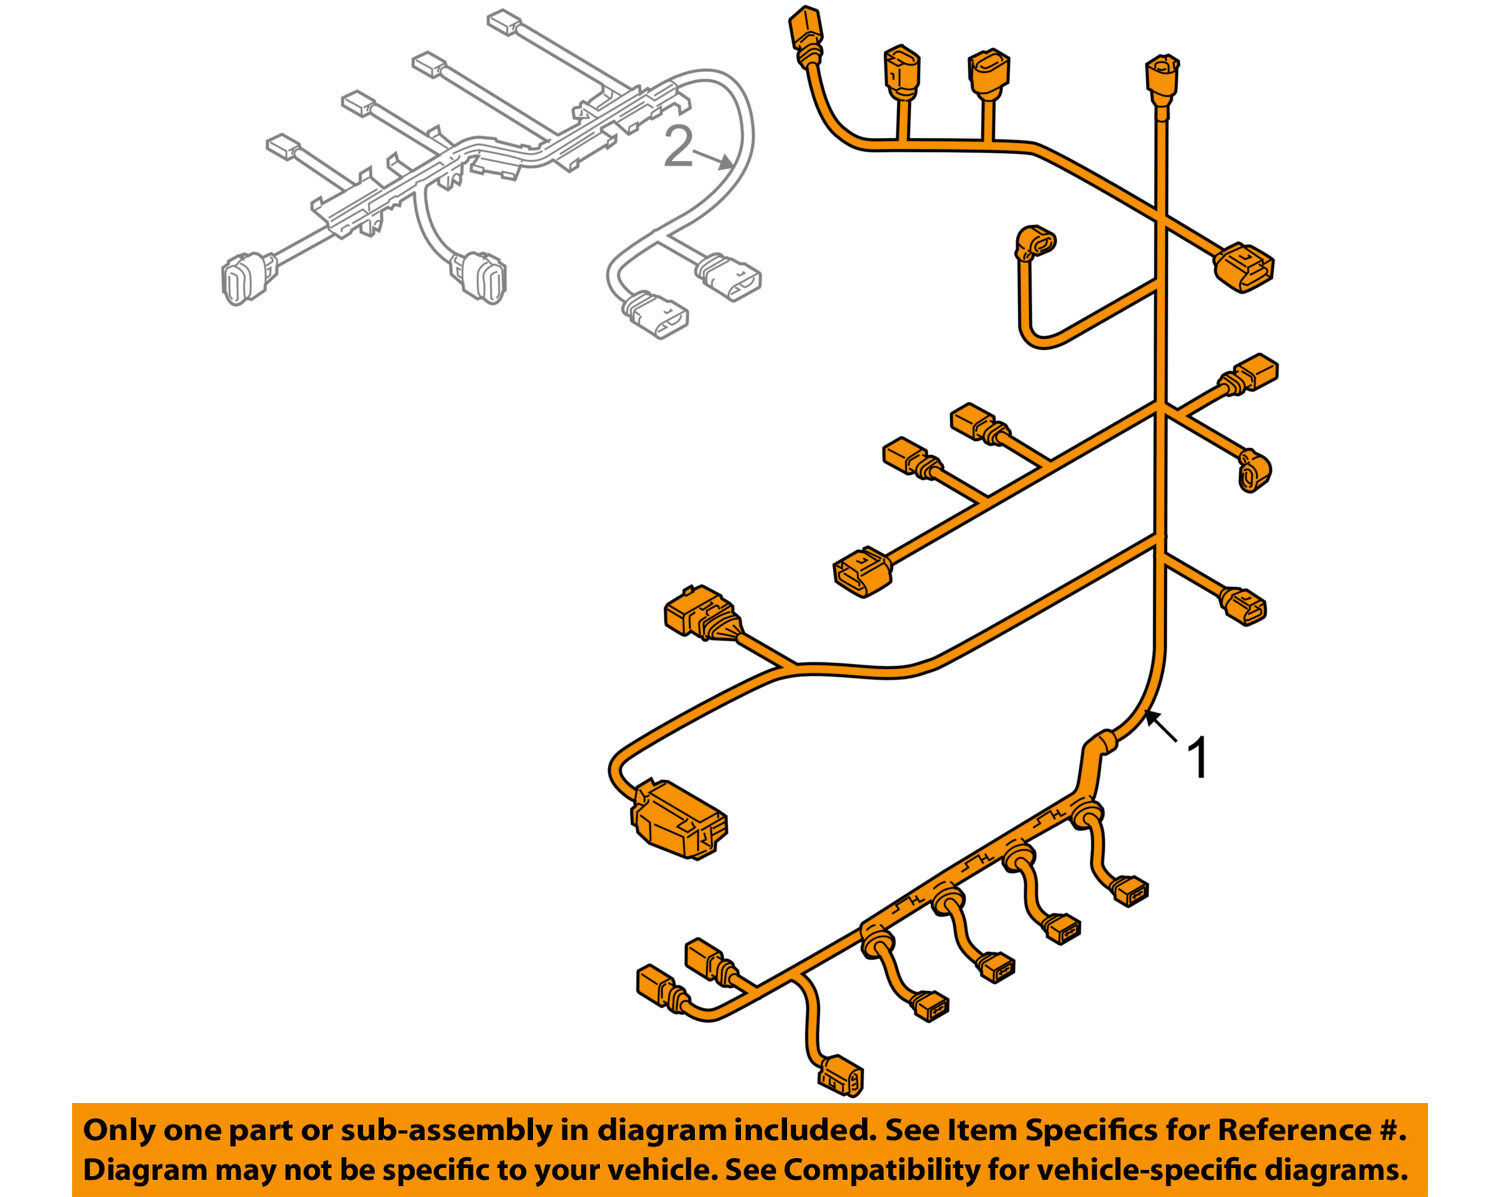 Volkswagen 06j971595d Genuine Oem Engine Harness Ebay K20a2 Ecu Wiring Diagram Norton Secured Powered By Verisign